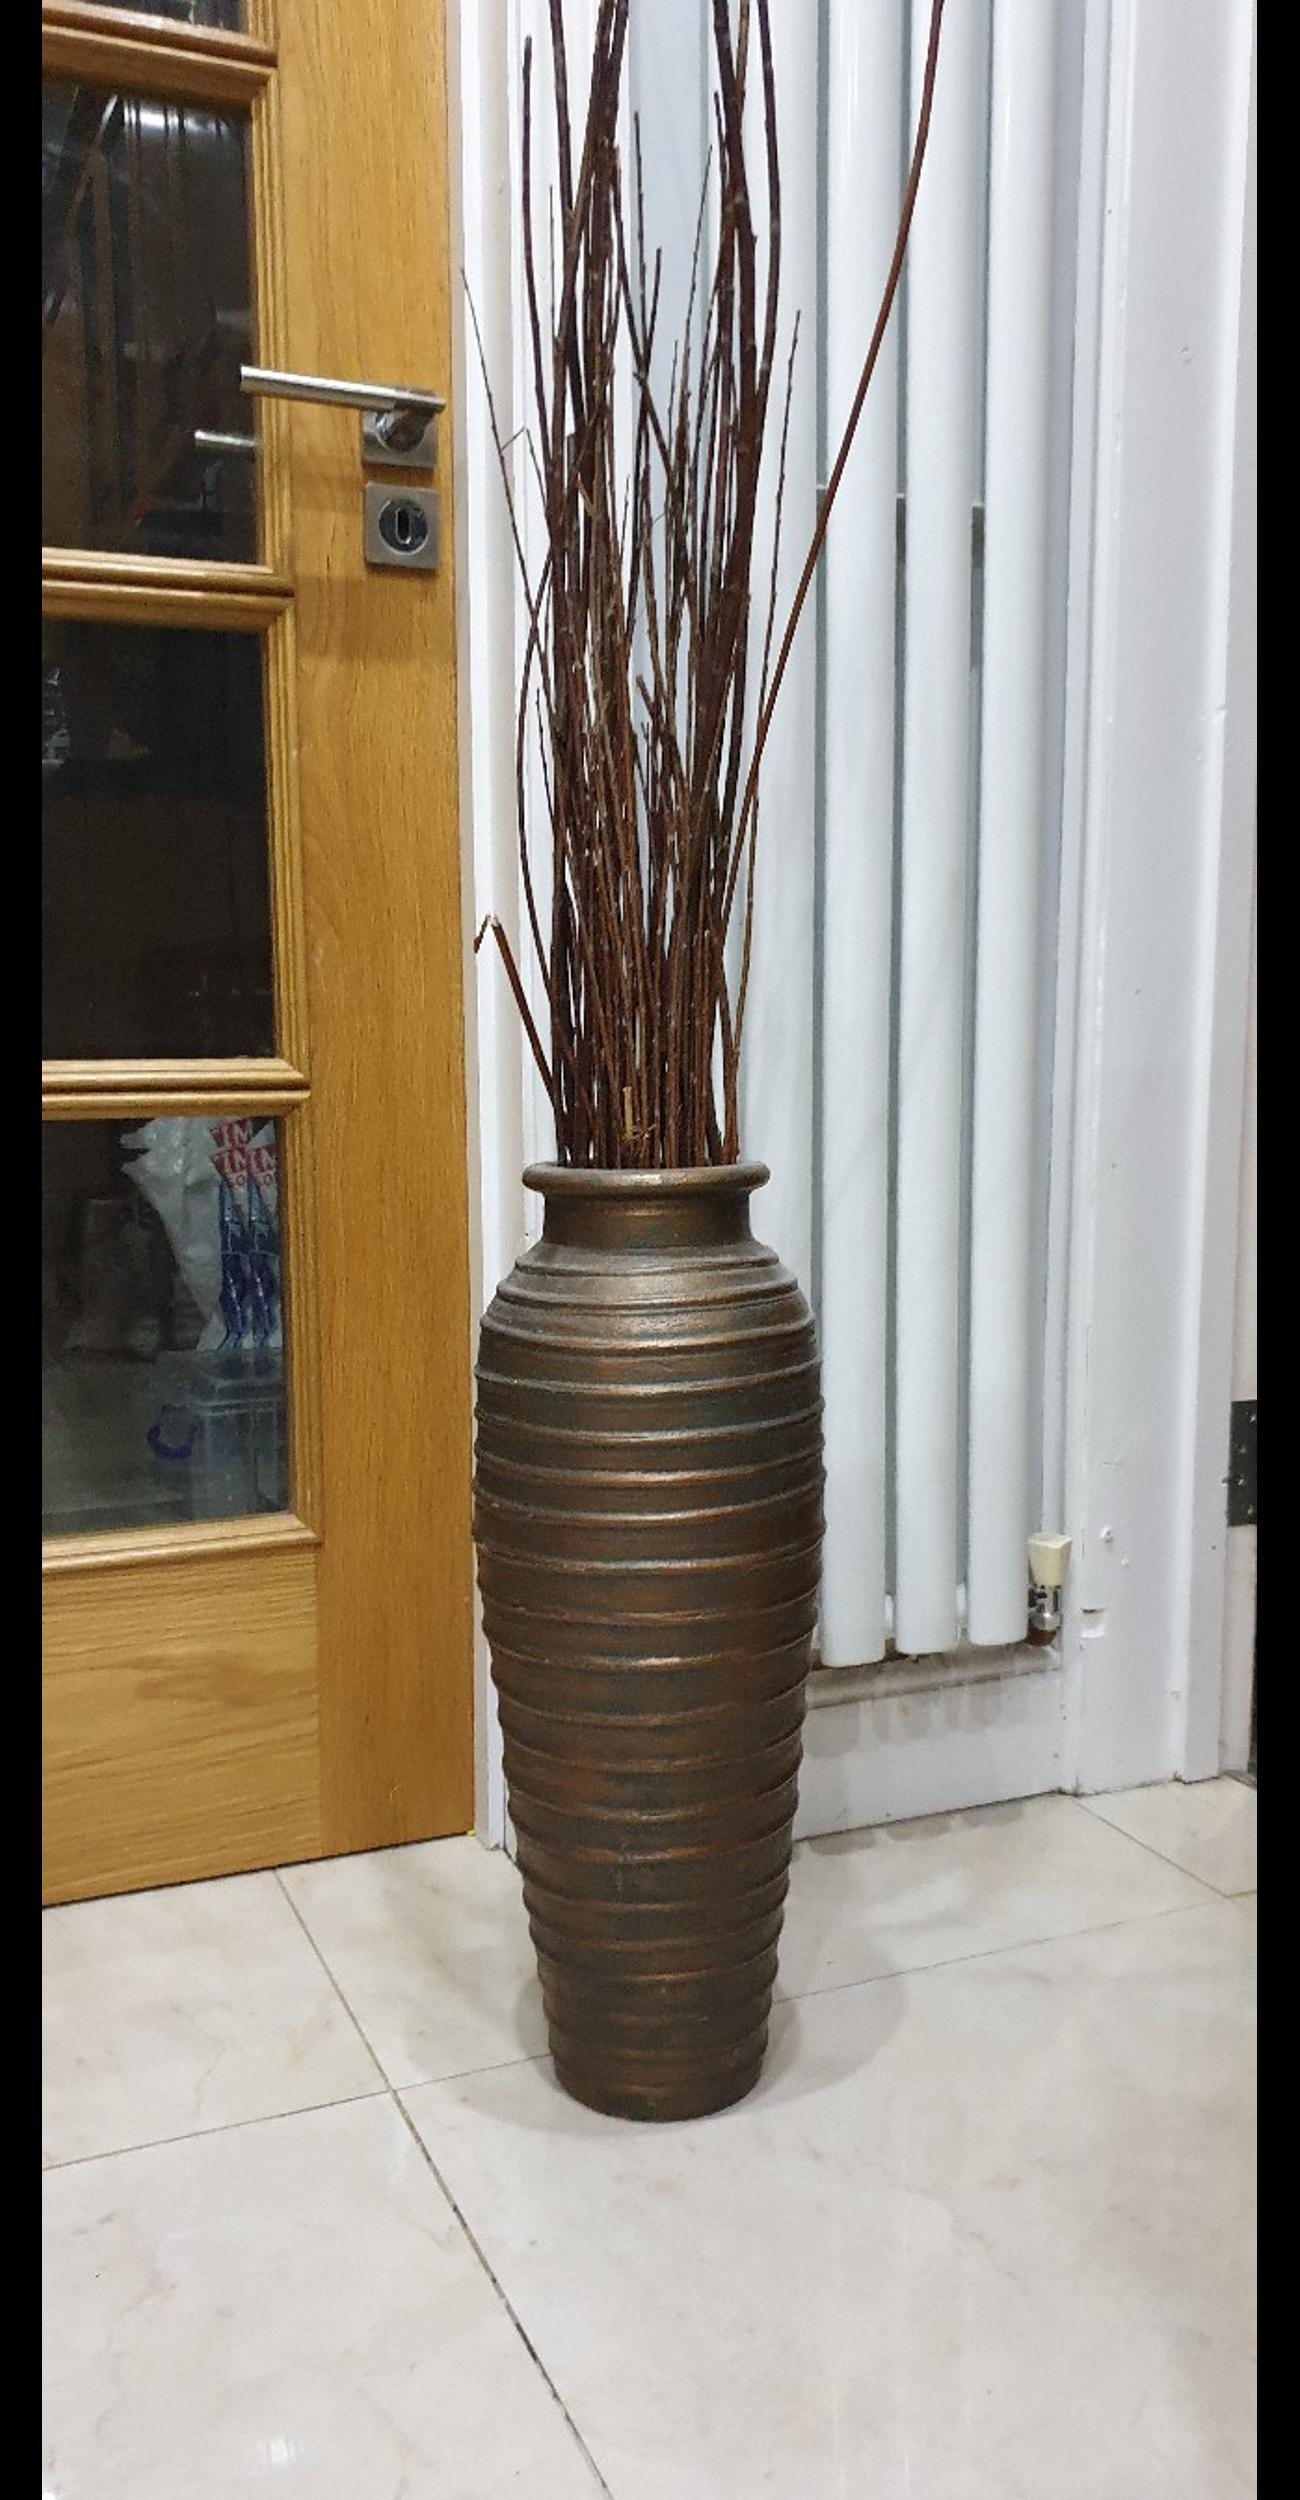 Dunelm Floor Standing Tall Vase Wow In Britwell For 16 00 For